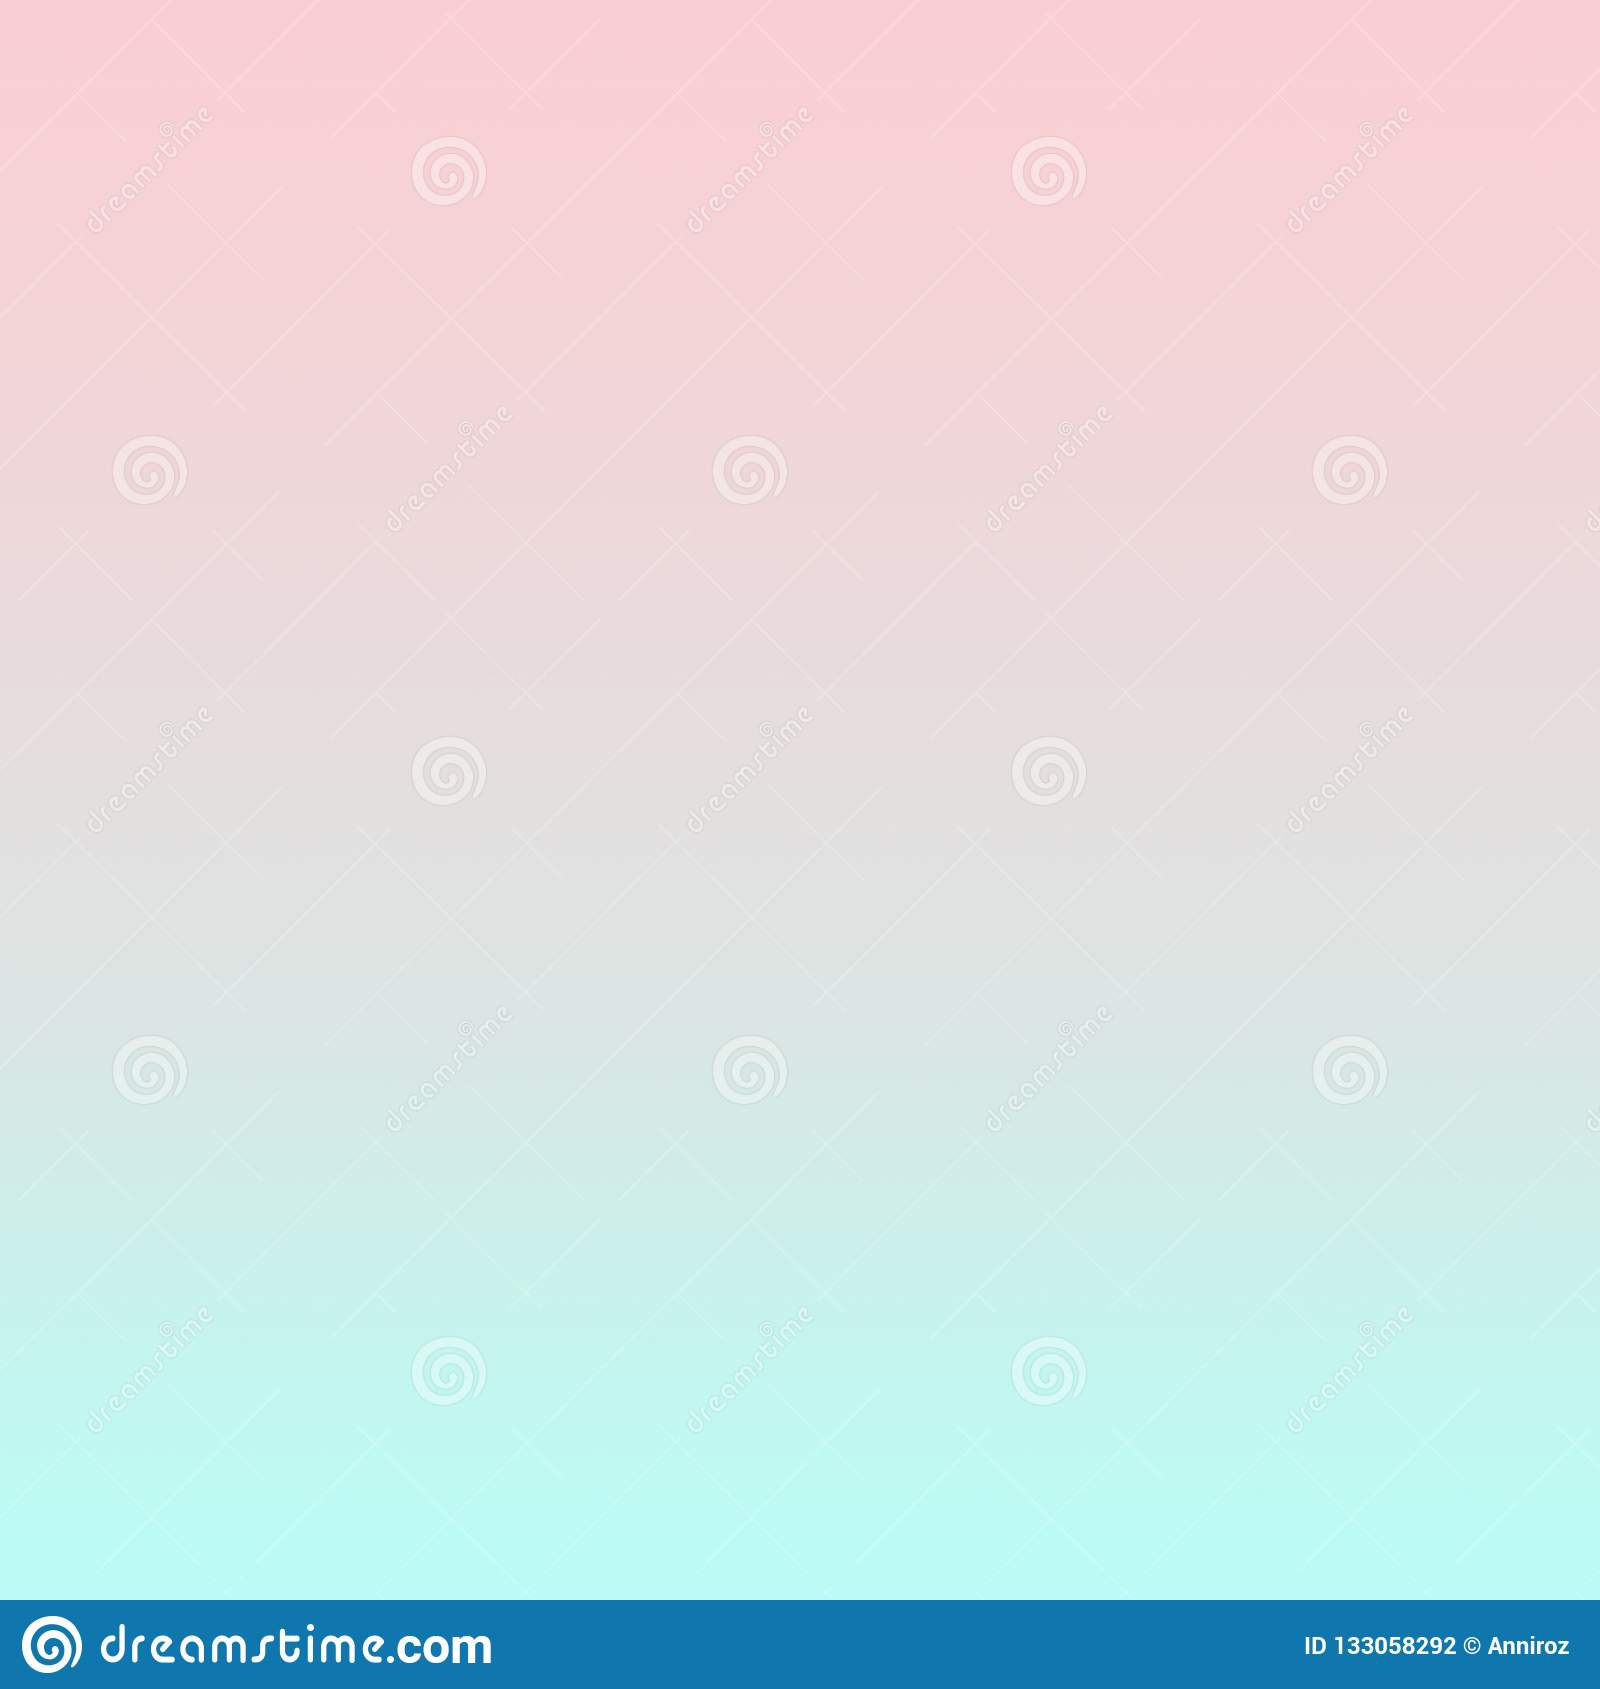 Pastel Ombre Millennial Pink Mint Gradient Background Abstract s